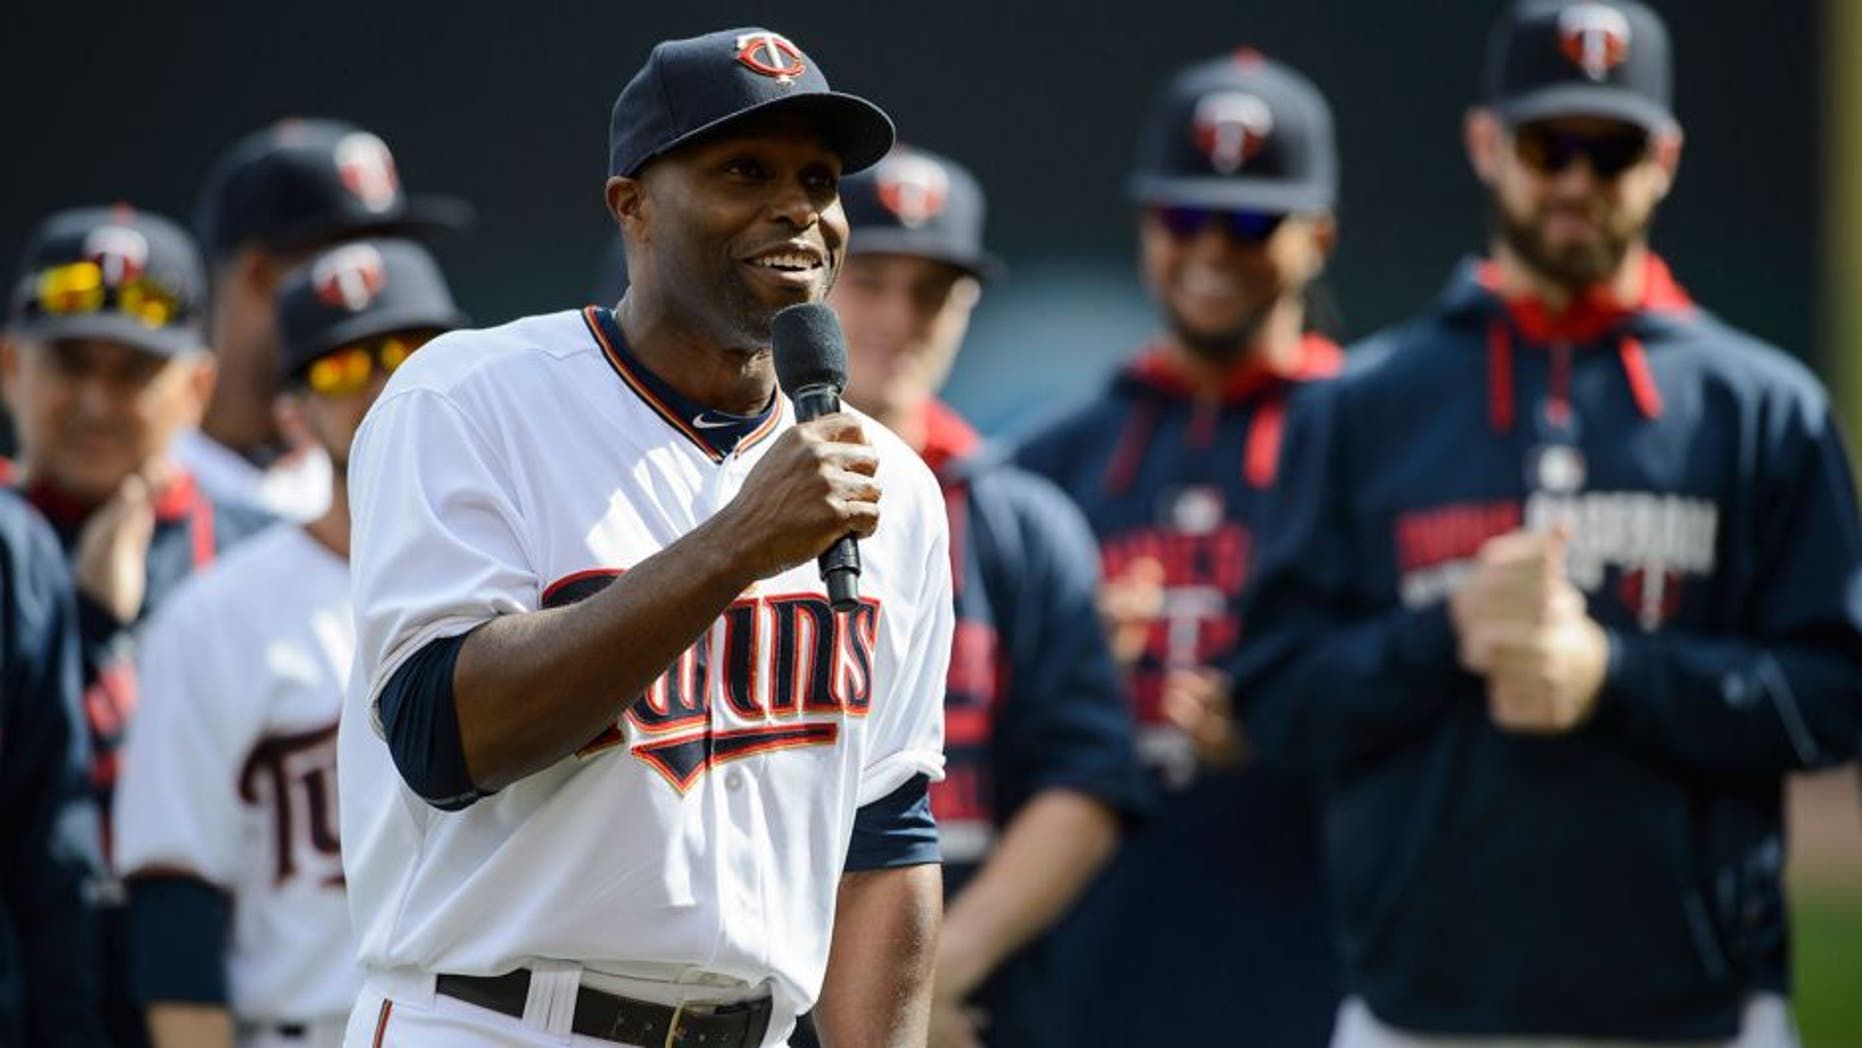 MINNEAPOLIS, MN - OCTOBER 4: Torii Hunter #48 of the Minnesota Twins speaks before the game against the Kansas City Royals on October 4, 2015 at Target Field in Minneapolis, Minnesota. The Royals defeated the Twins 6-1. (Photo by Hannah Foslien/Getty Images)